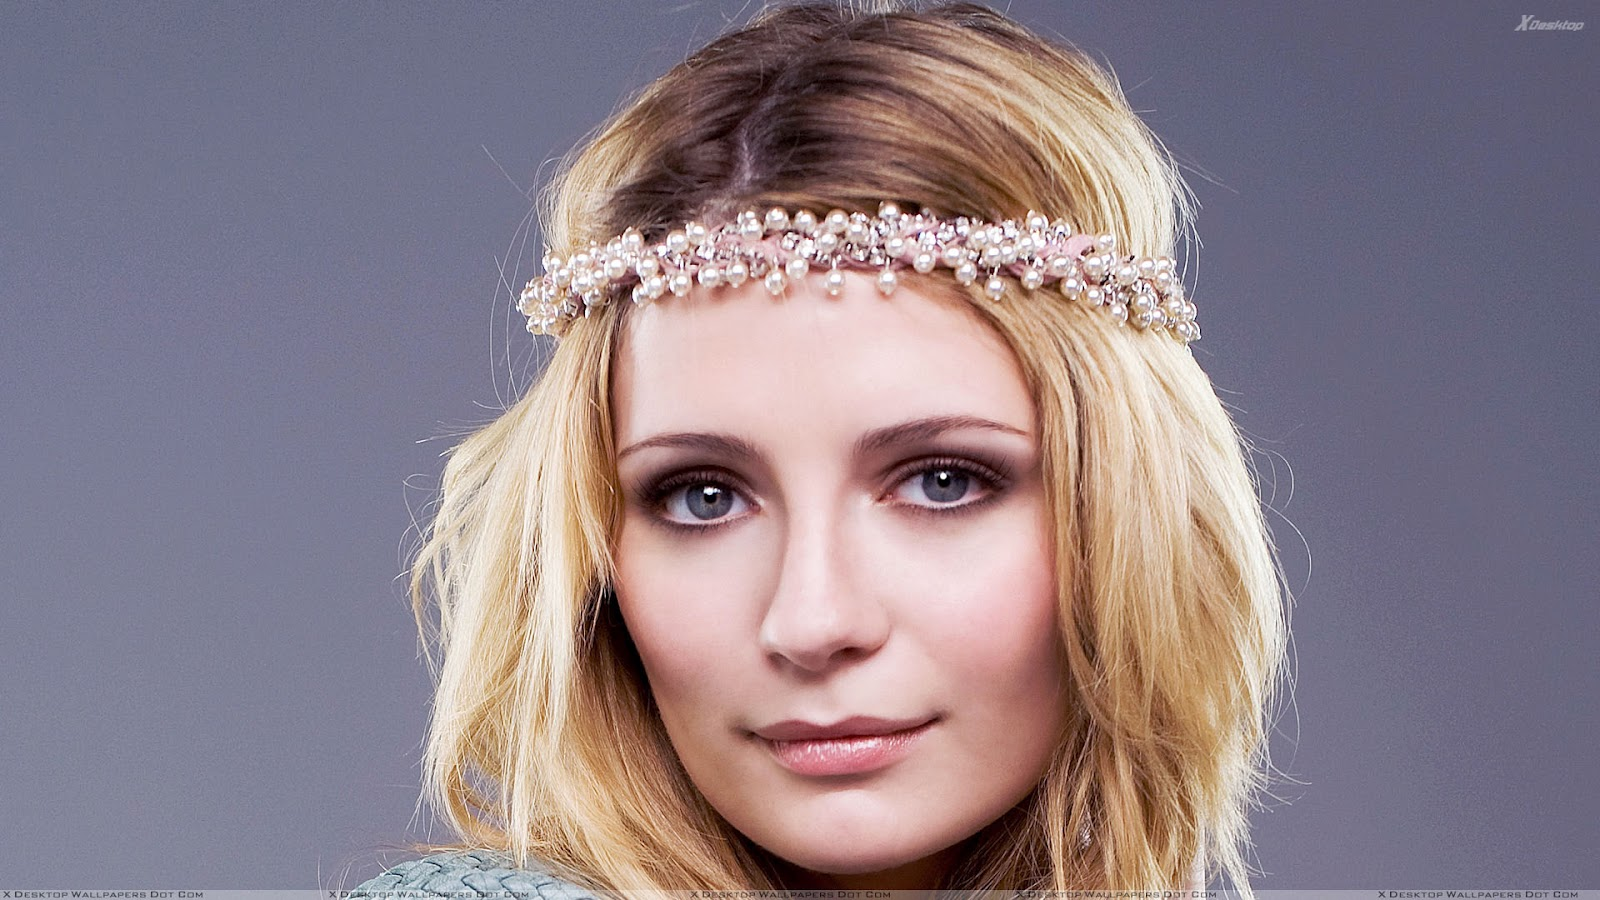 Mischa Barton (born 1986 (naturalized American citizen) Mischa Barton (born 1986 (naturalized American citizen) new images